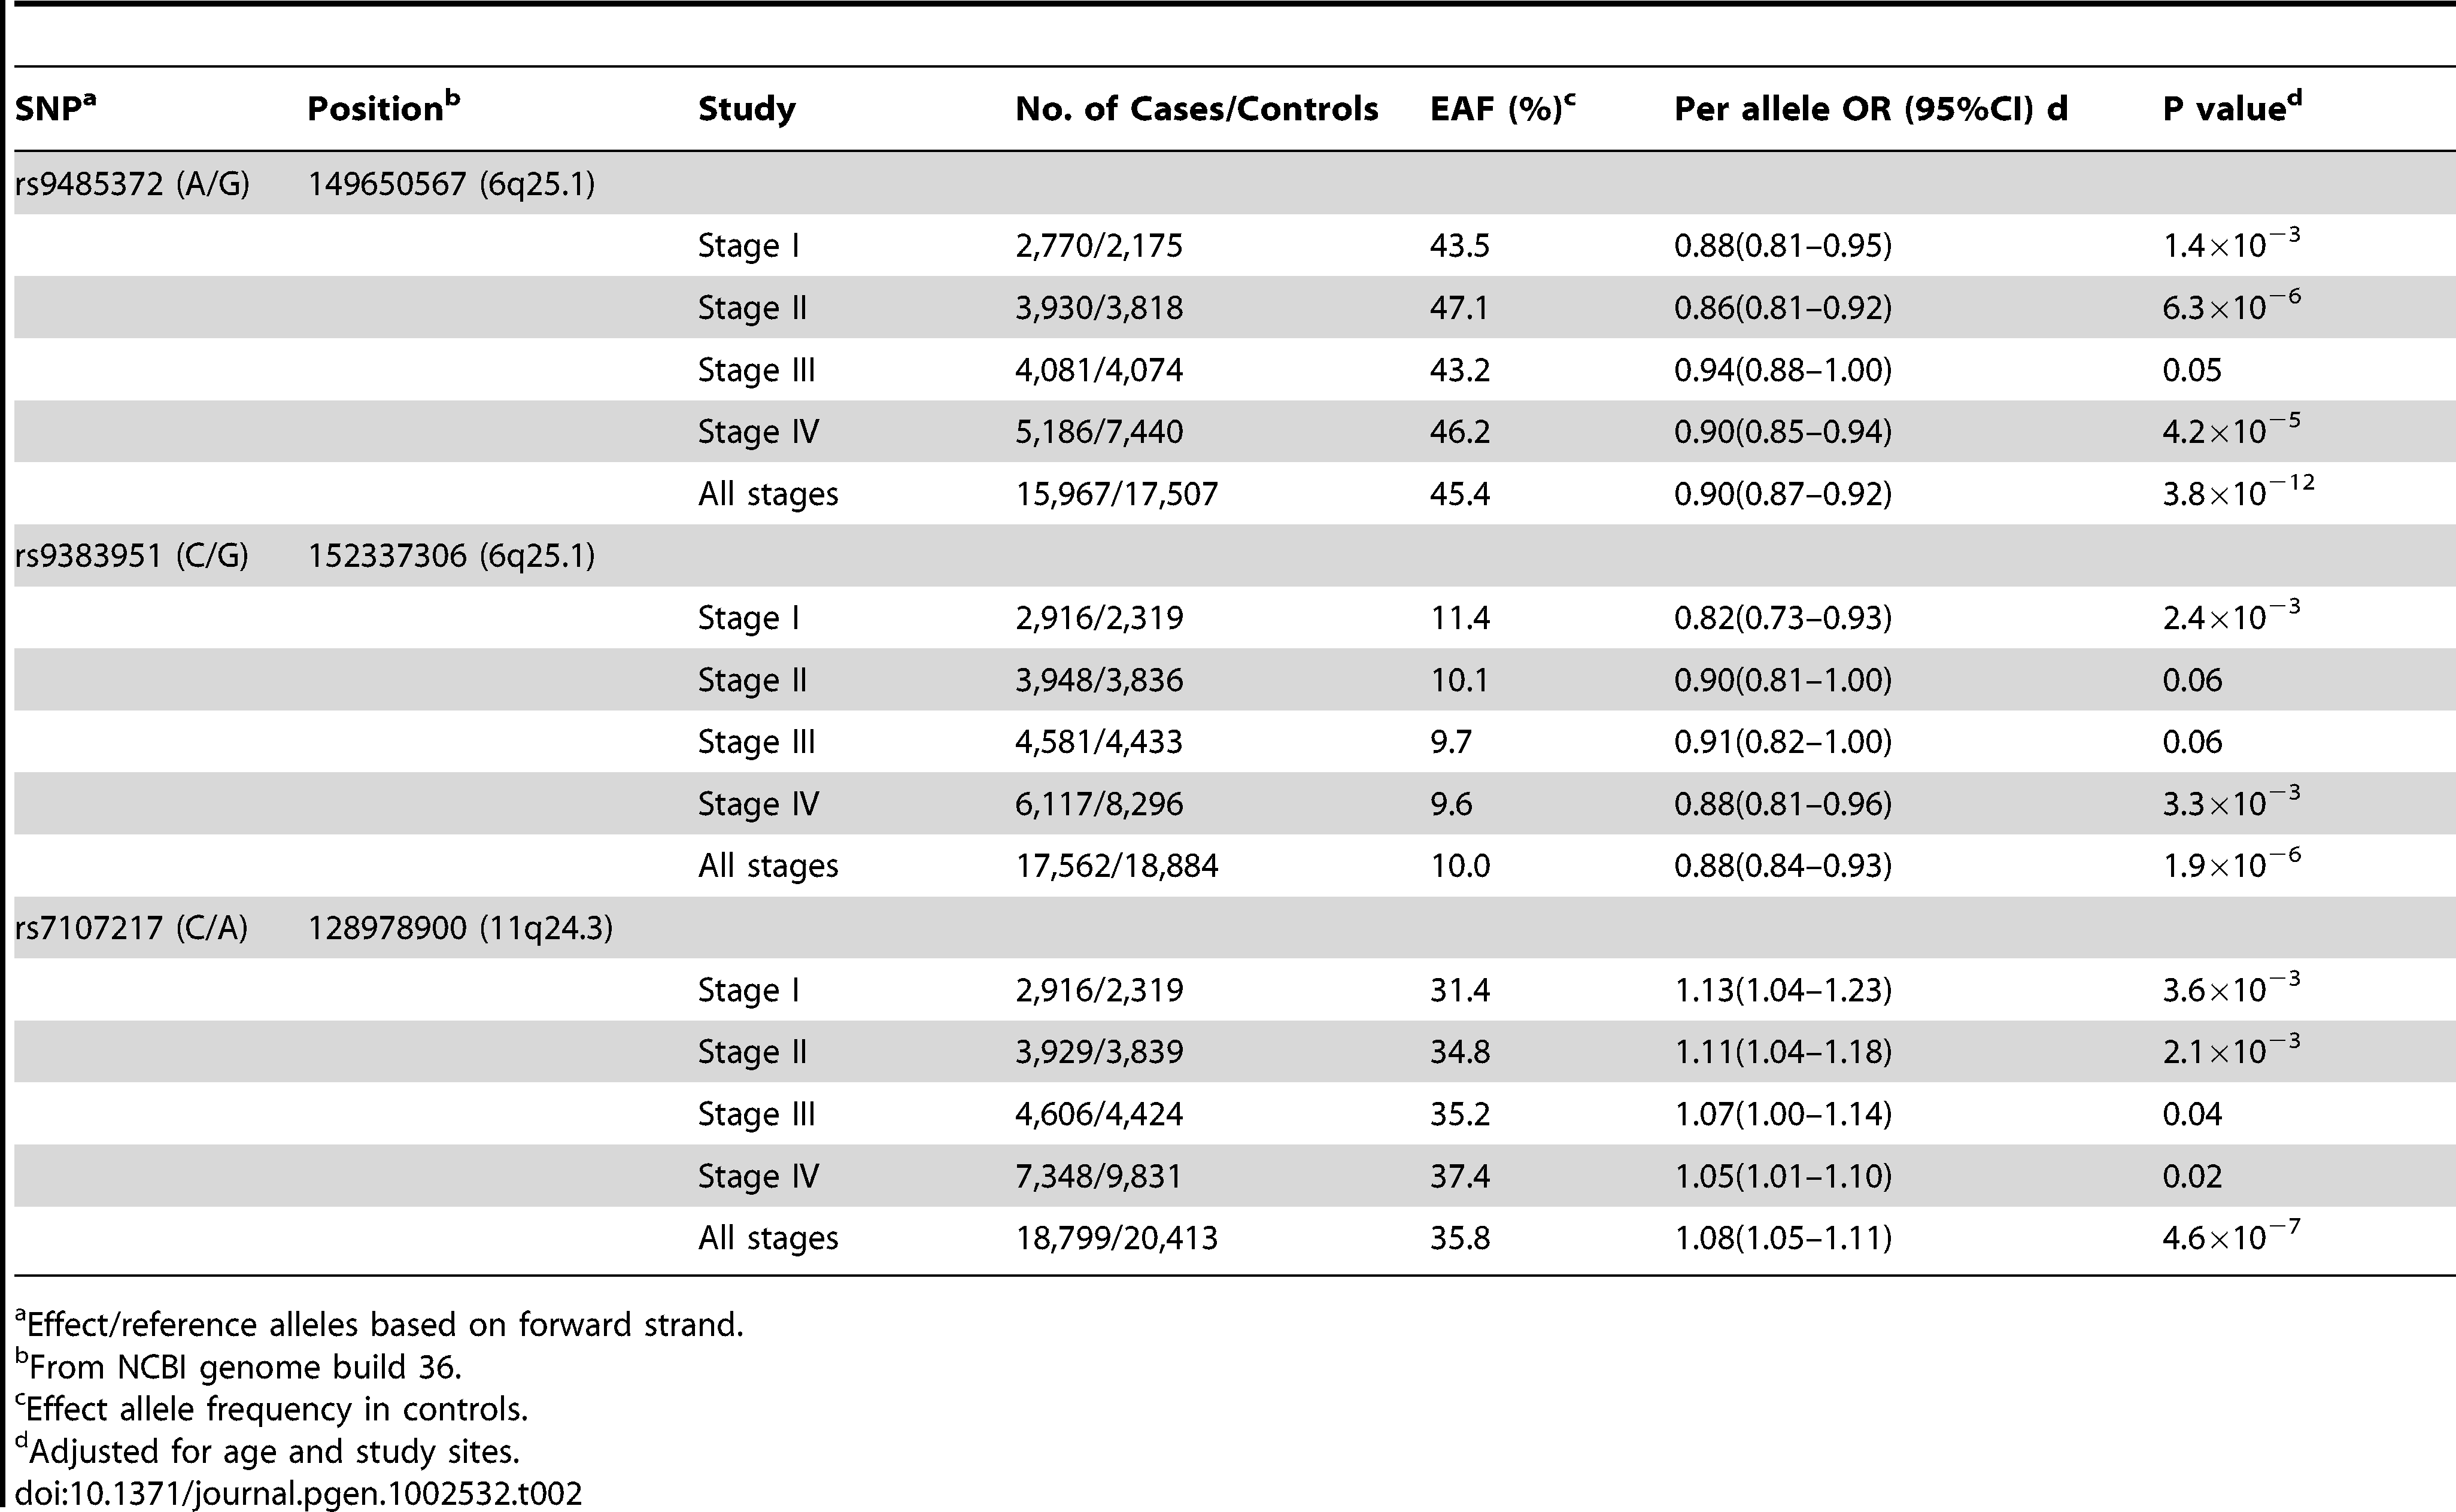 Summary of results for the three SNPs showing a statistically or marginally significant association in all four stages with breast cancer risk, the Asia Breast Cancer Consortium.